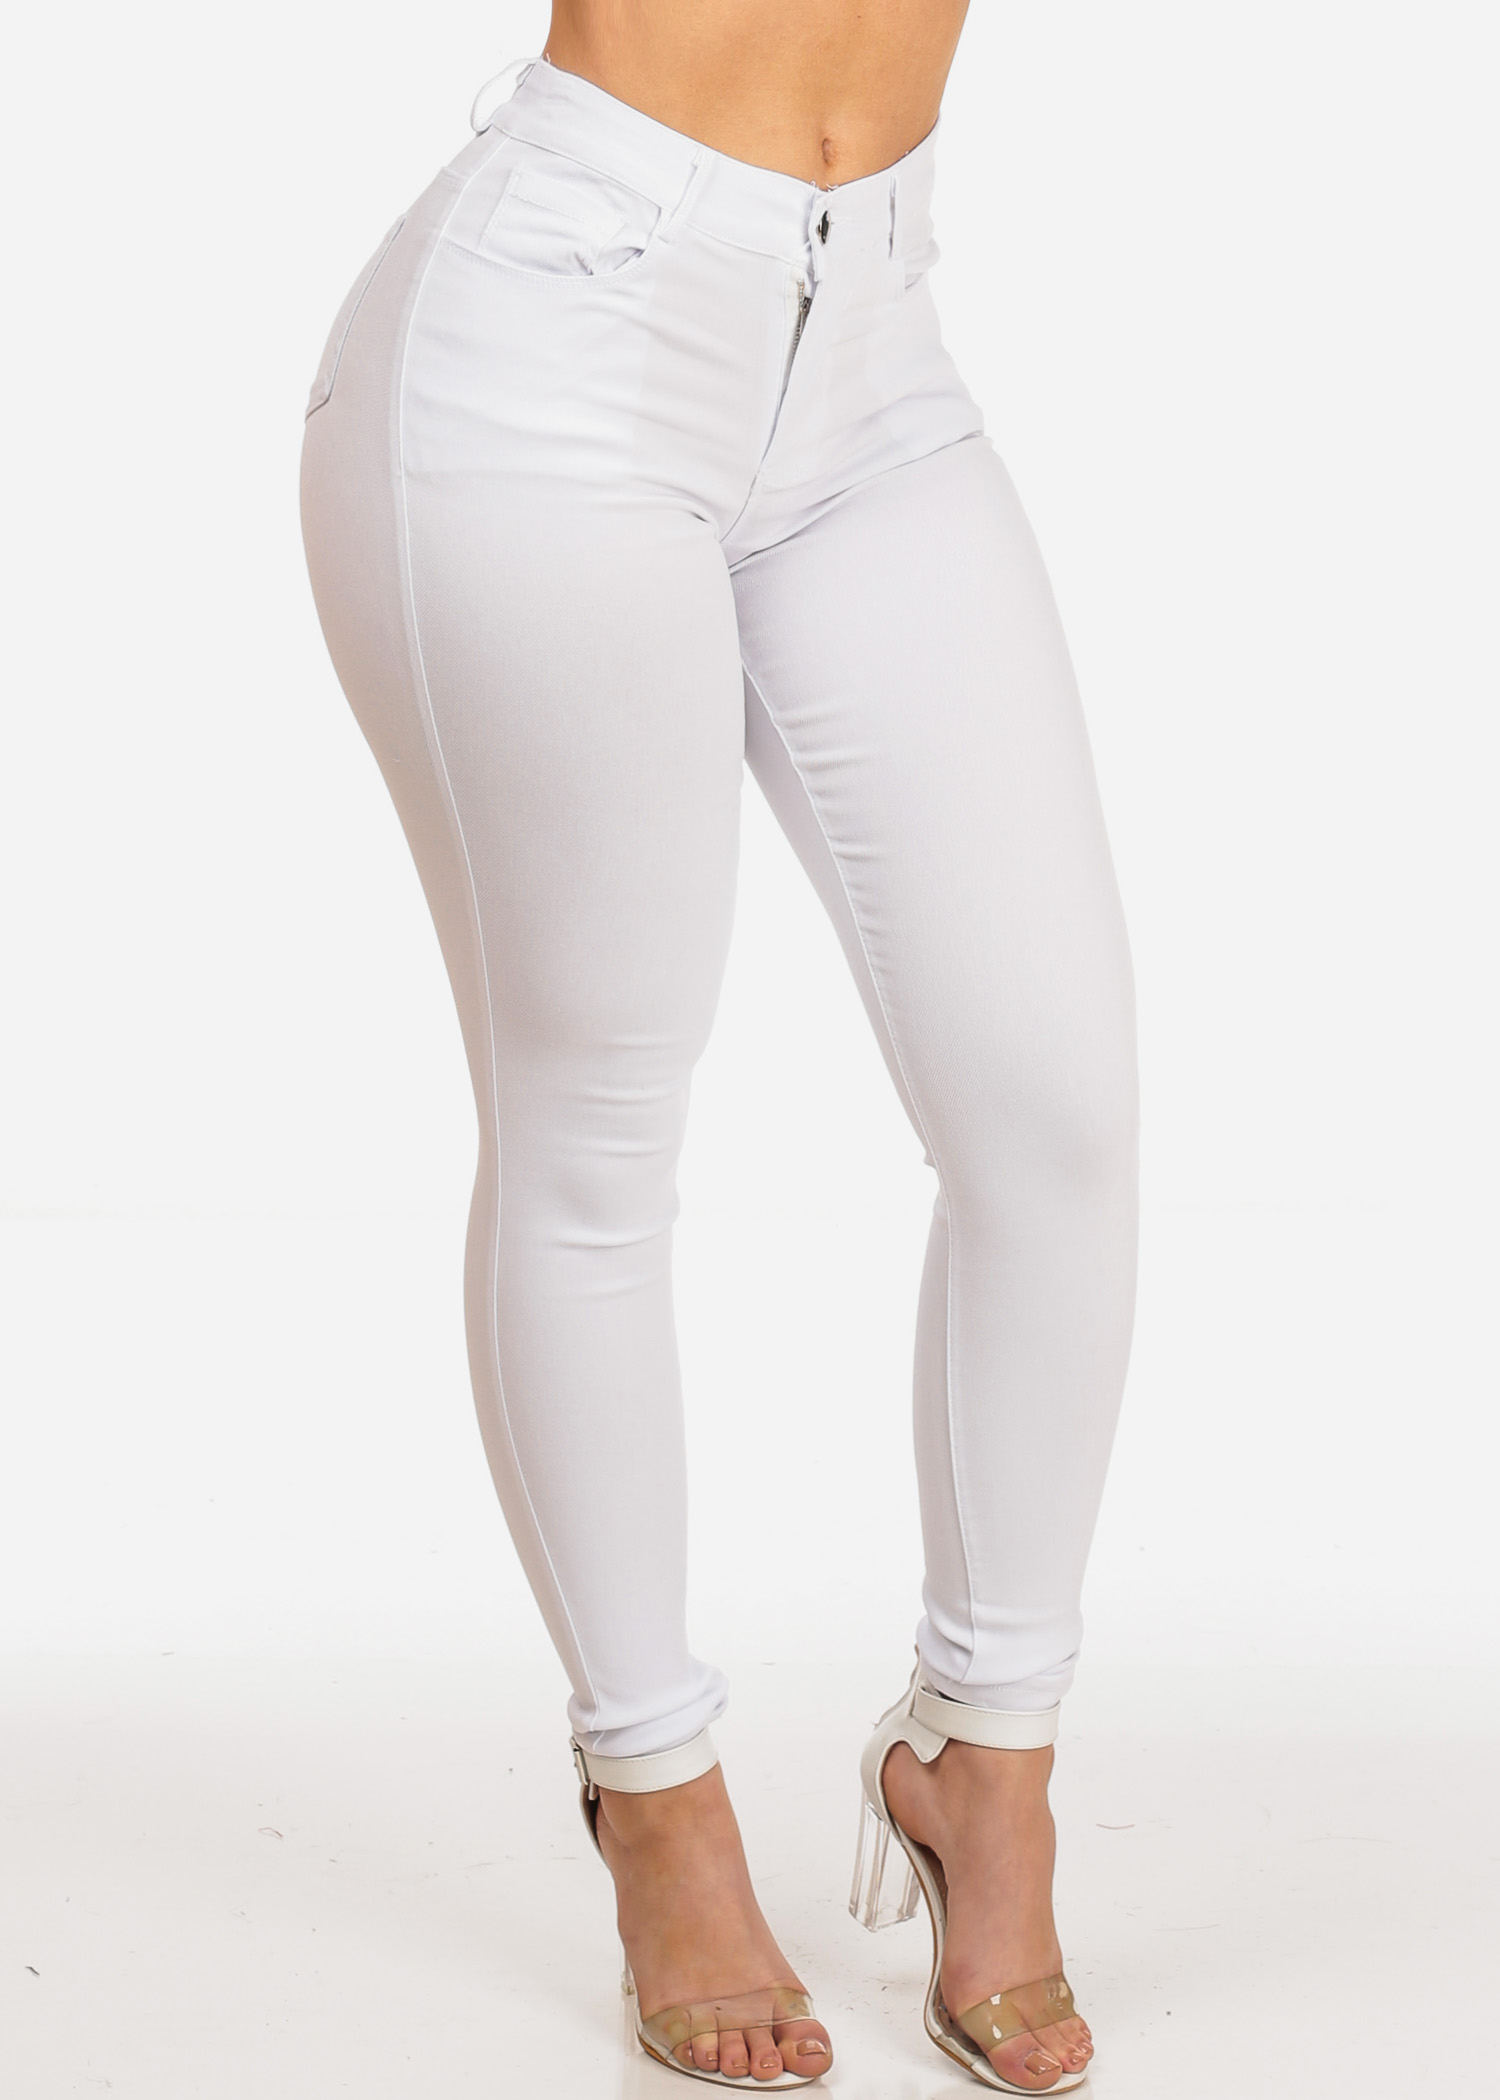 Womens Juniors Women's Junior Night Out Club Wear Stretchy Solid White High Waisted 1 Button Jeggings Skinny Jeans 11067V